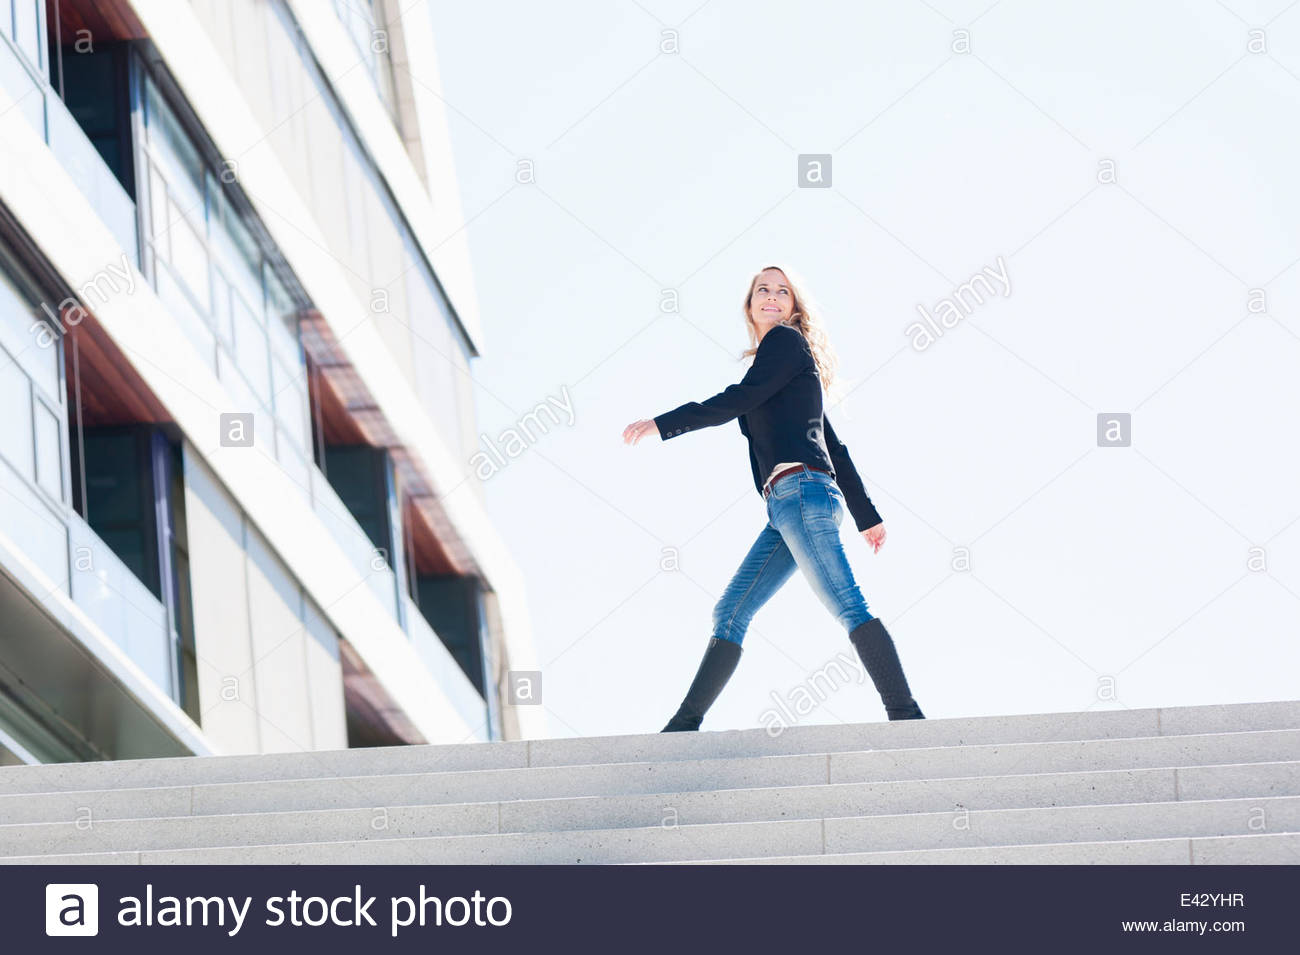 Mid adult woman striding toward office building in city - Stock Image